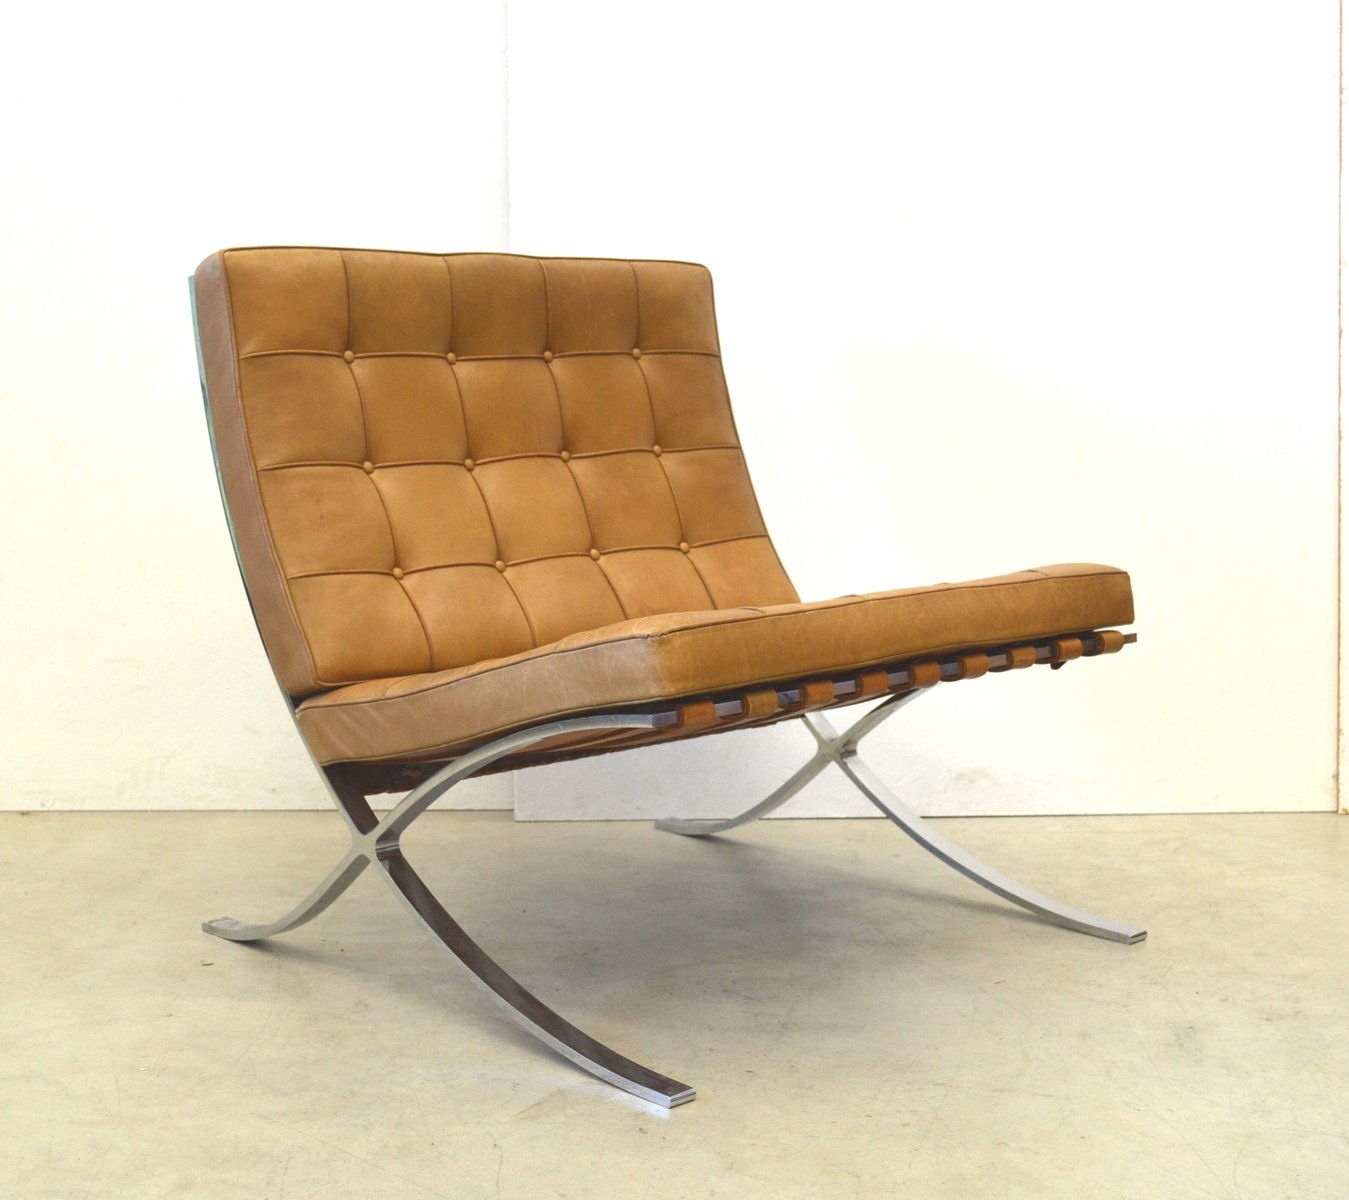 vintage barcelona chair by mies van der rohe for knoll international 1960s for sale at pamono. Black Bedroom Furniture Sets. Home Design Ideas